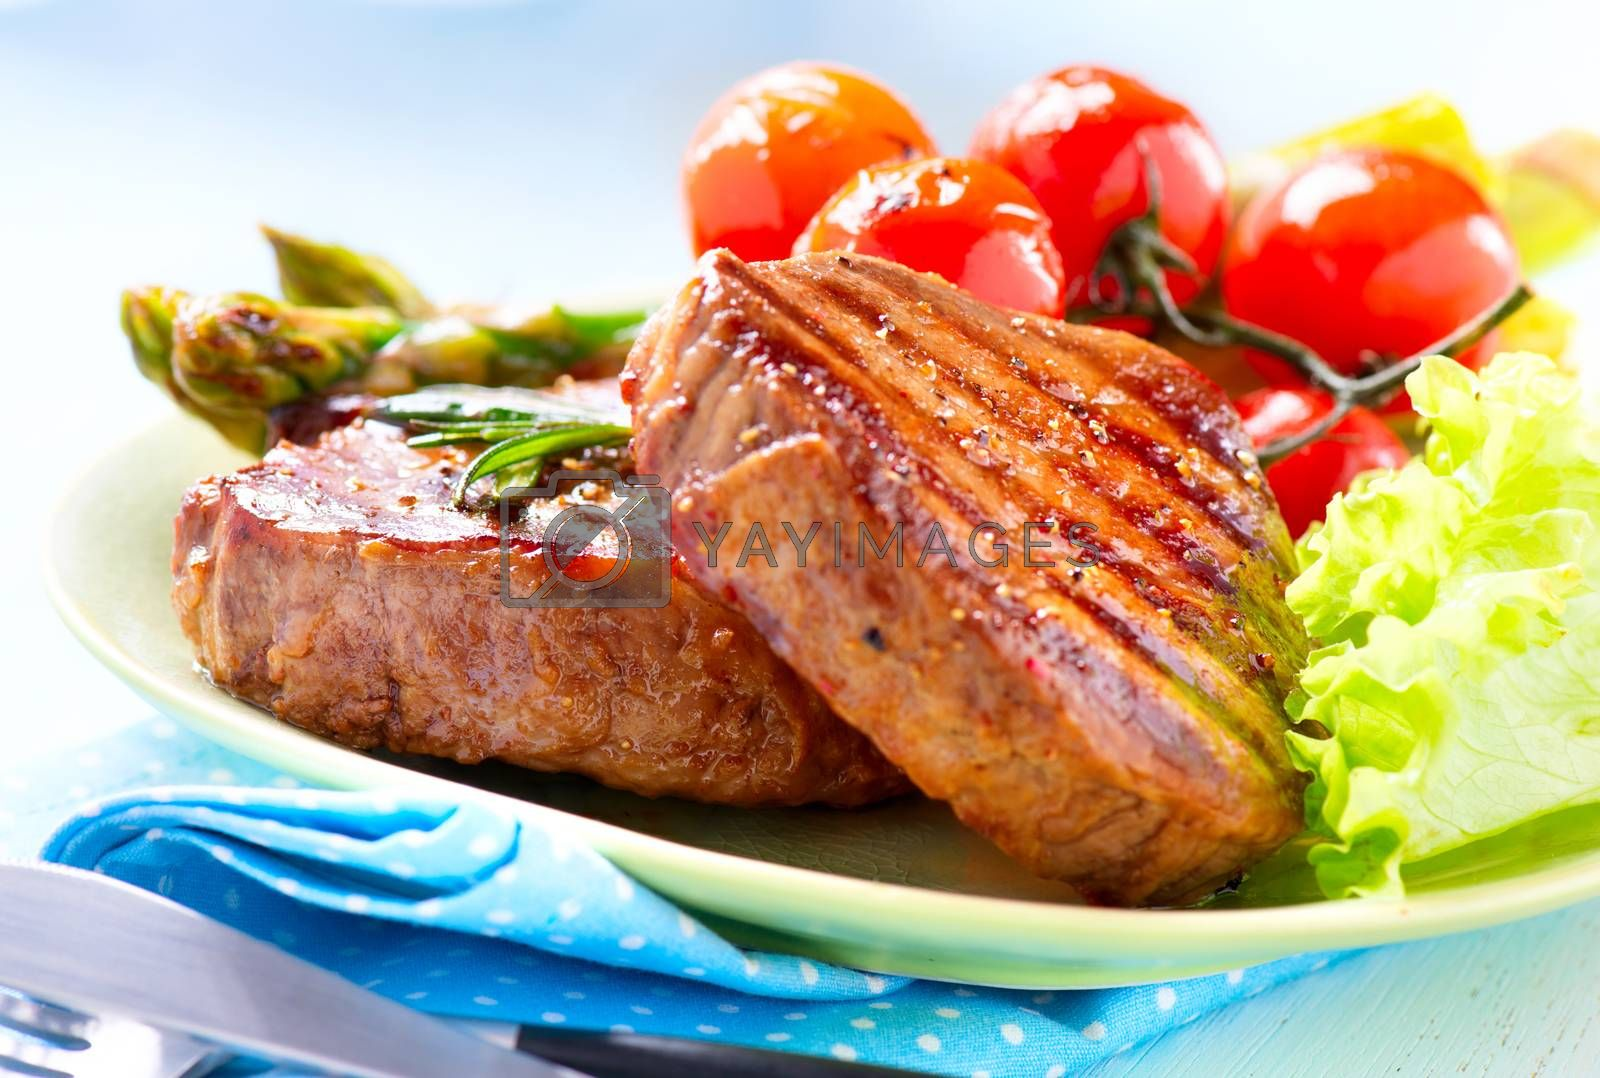 Steak. Grilled Beef Steak Meat with Vegetables by Subbotina Anna